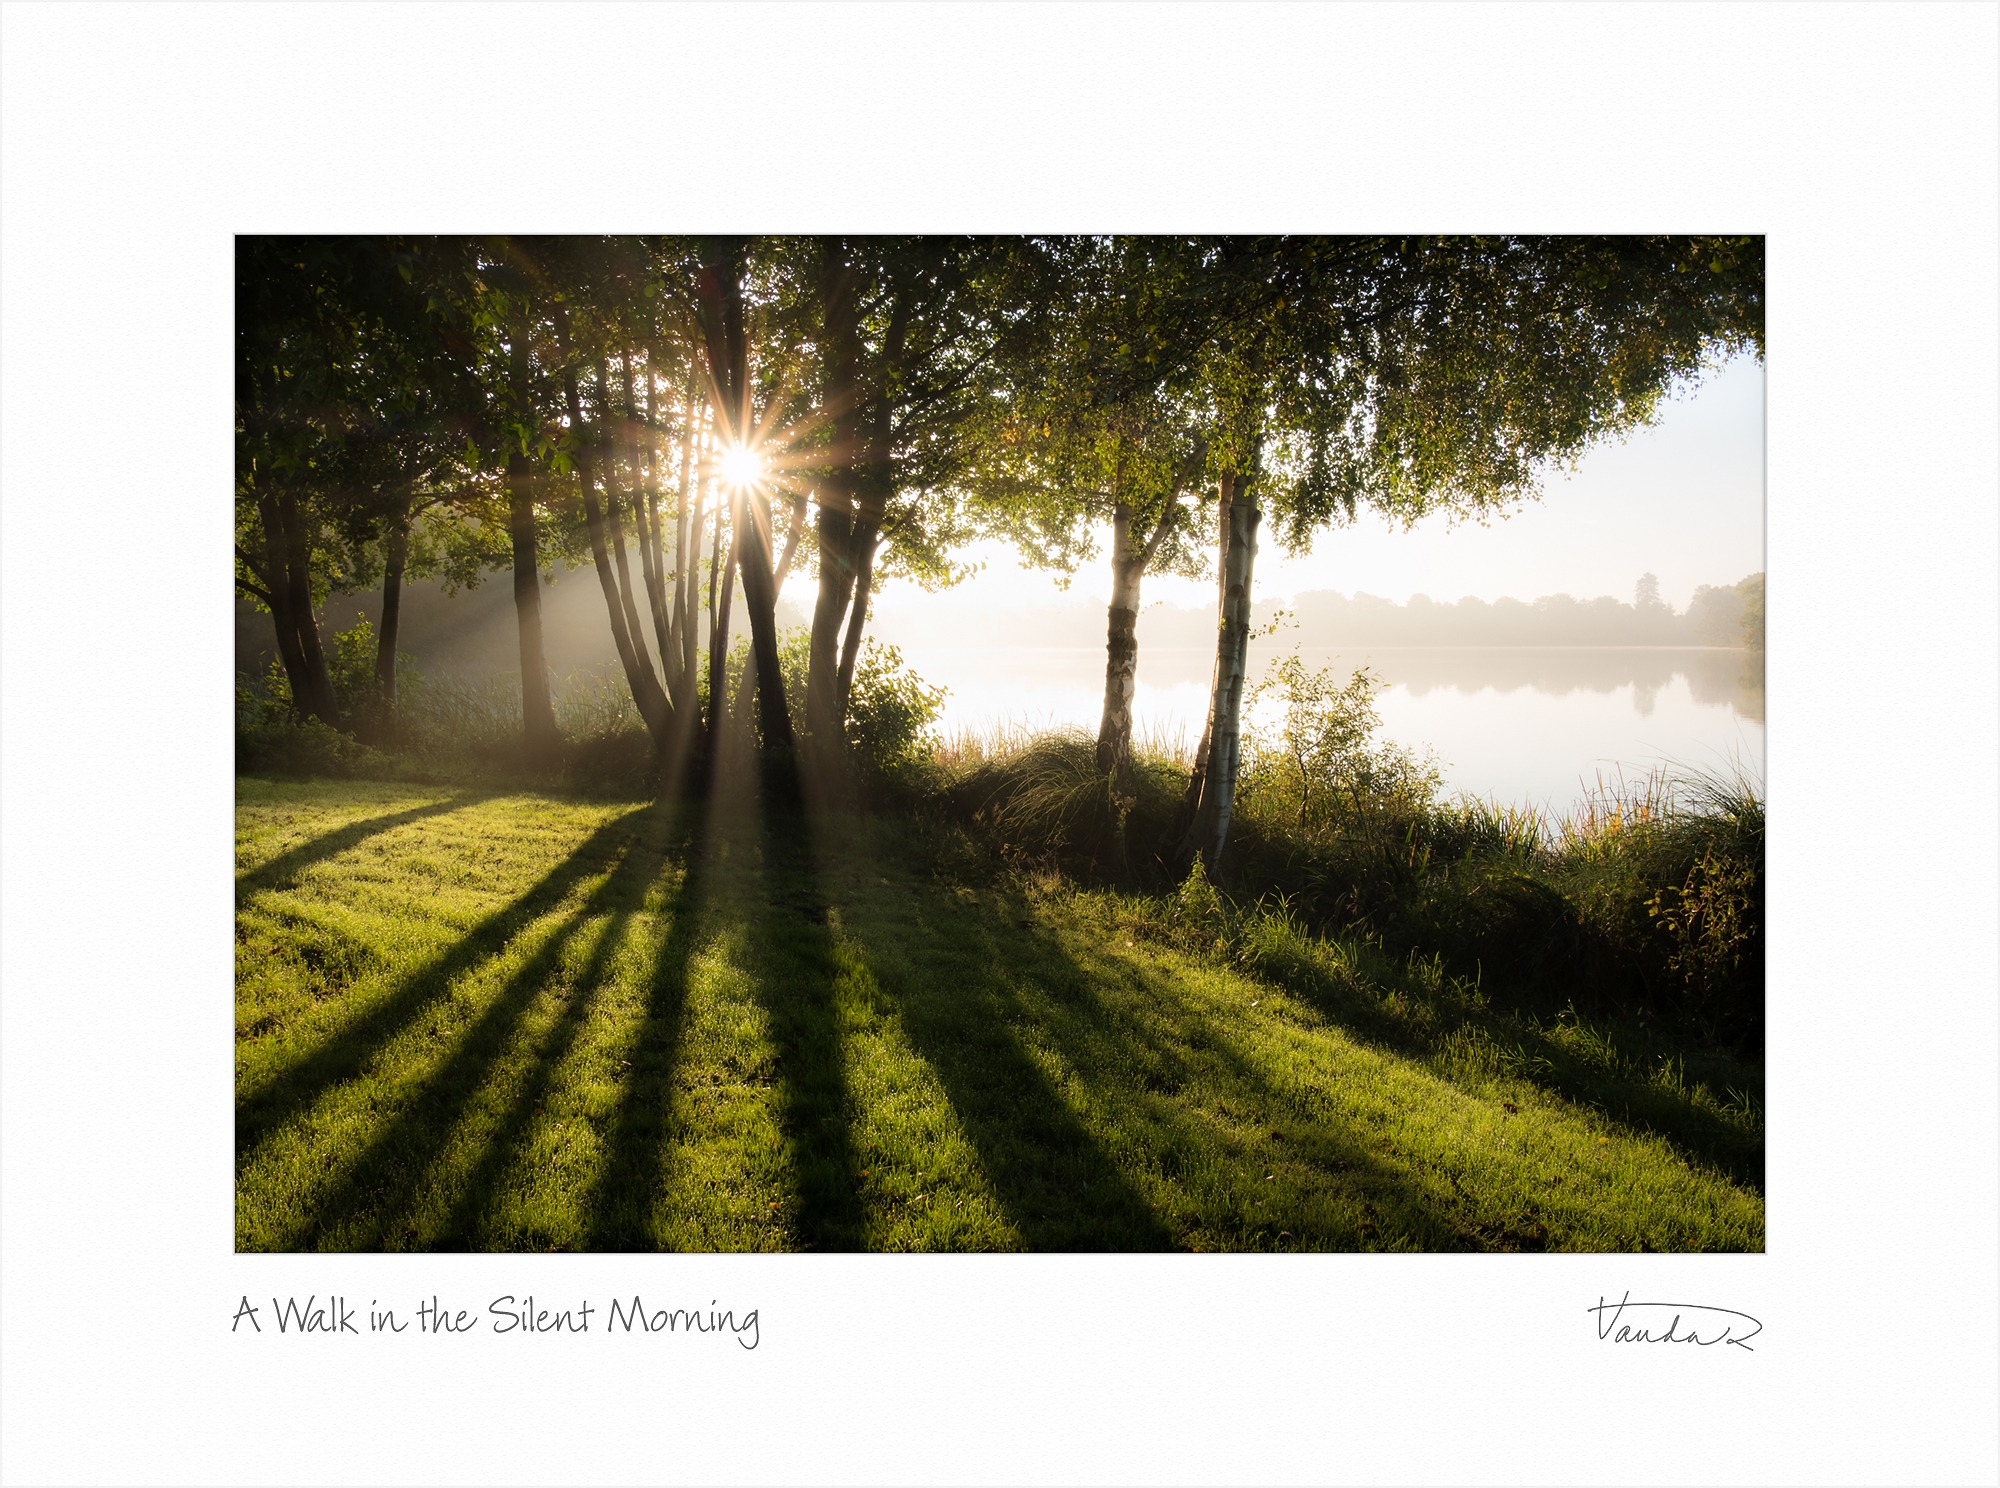 A Walk in the Silent Morning